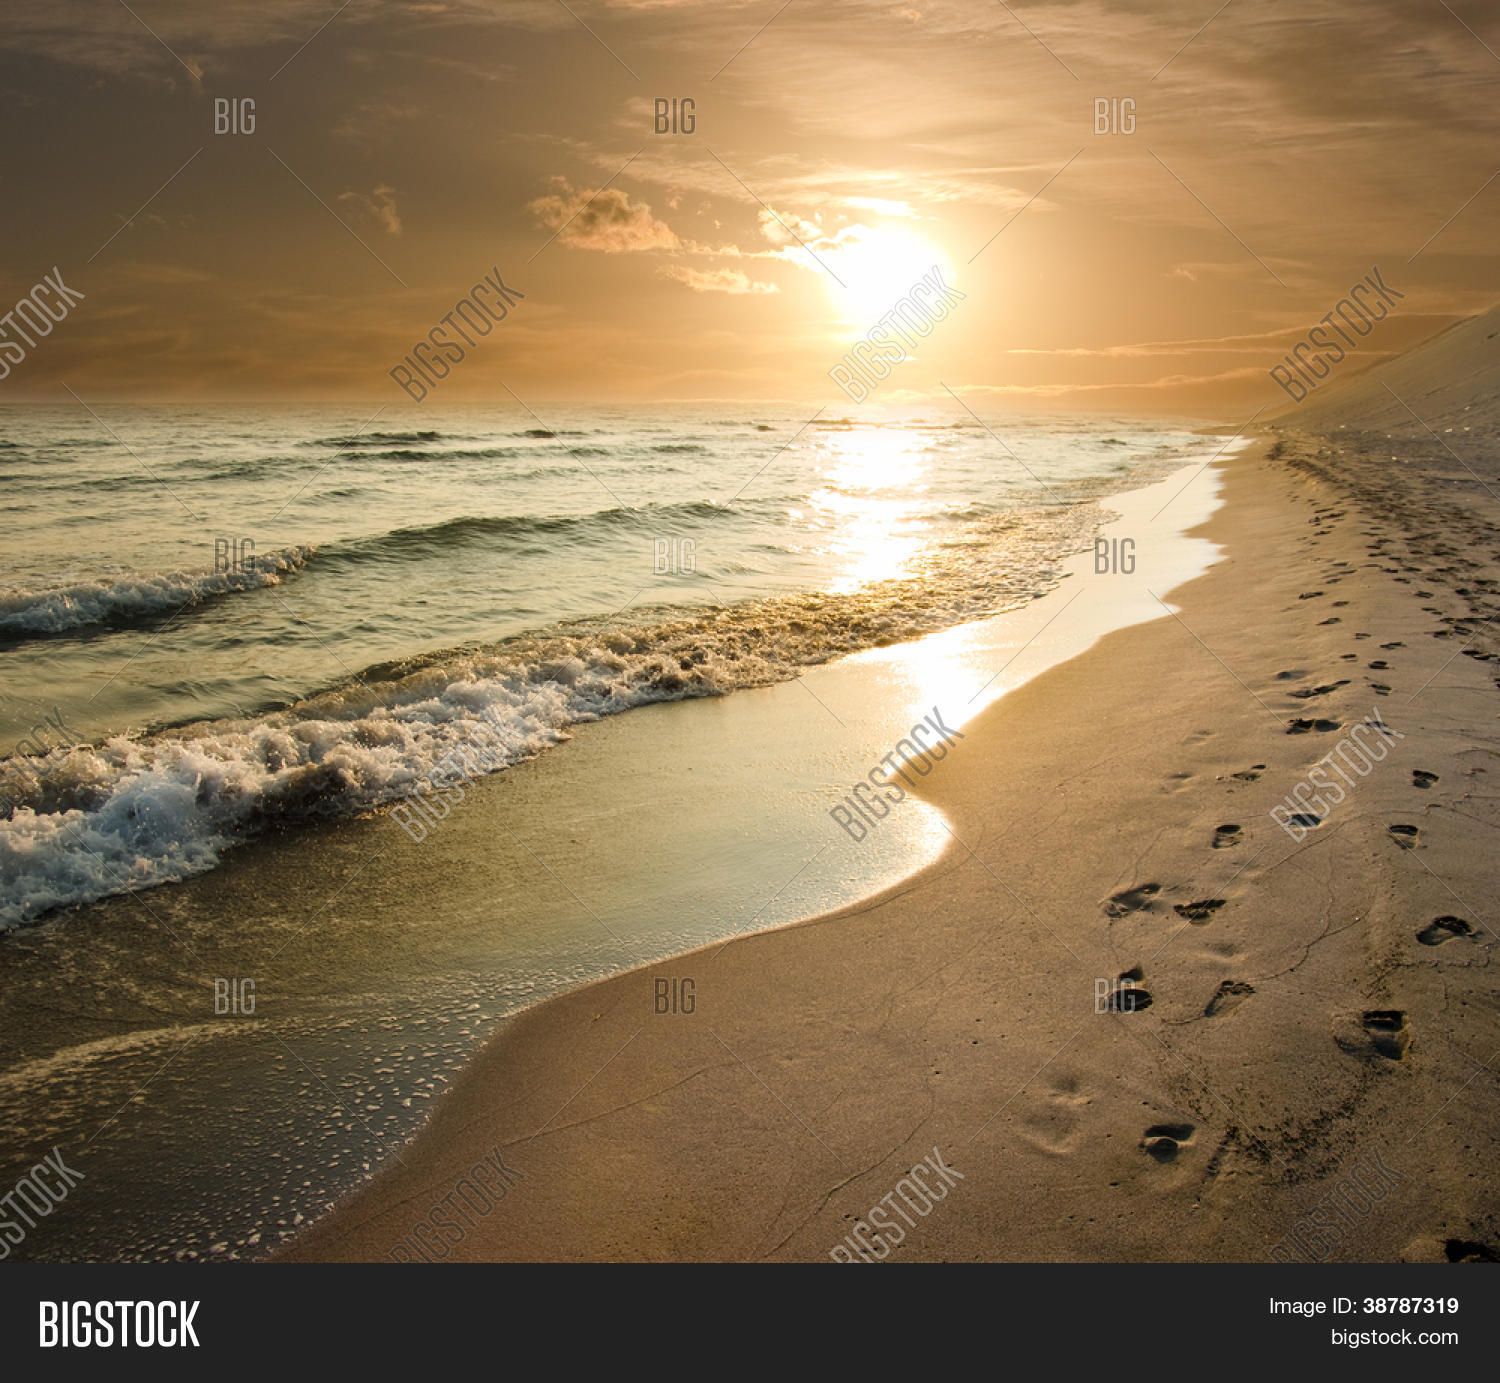 Golden Sunset On Sea Shore Image & Photo | Bigstock